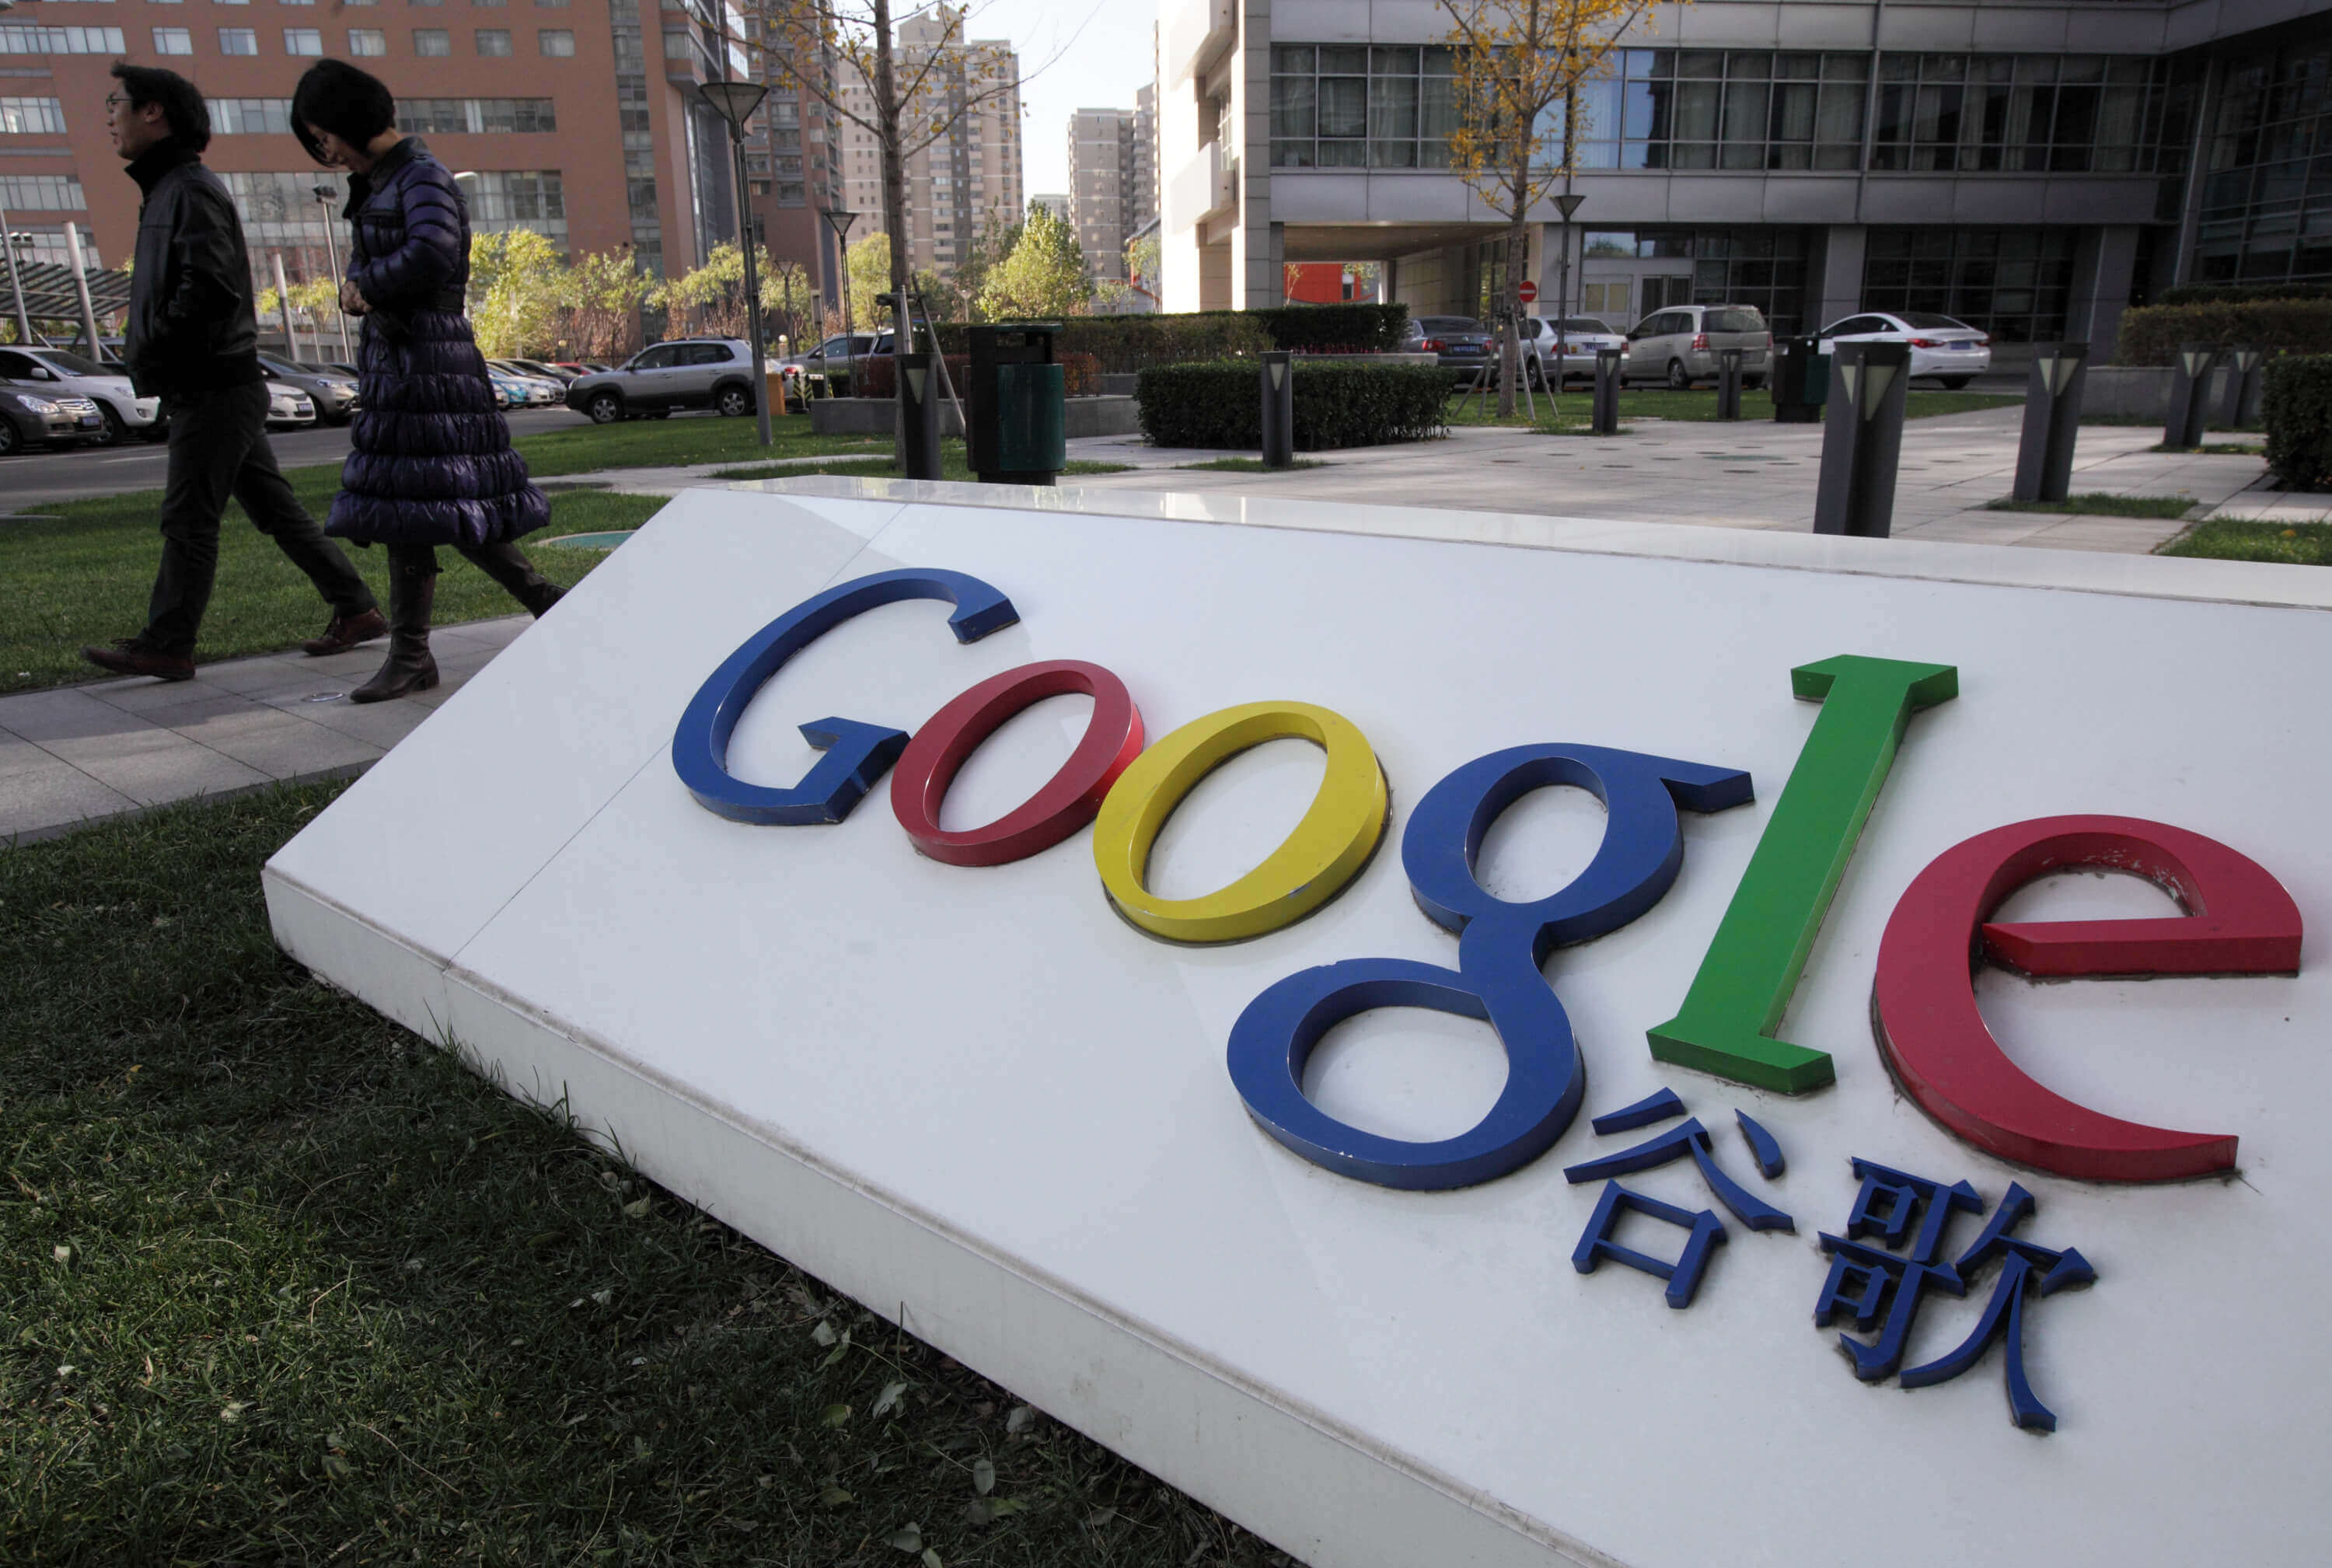 Cotton: Google shouldn't 'bow' to Beijing with censored search engine